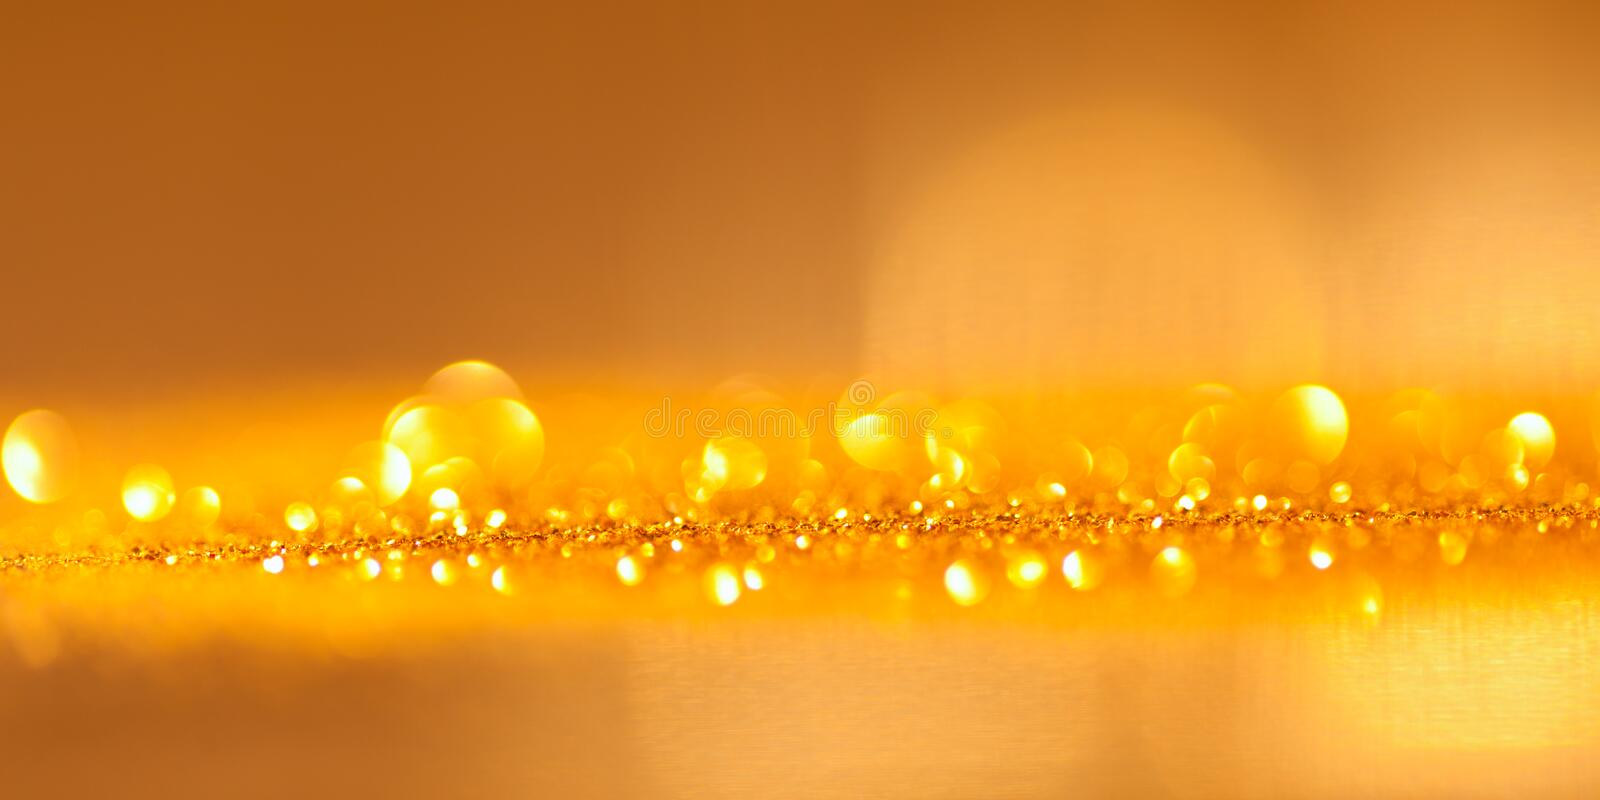 Download Twinkled Gold Background - Christmas Stock Photos - Image: 26608593